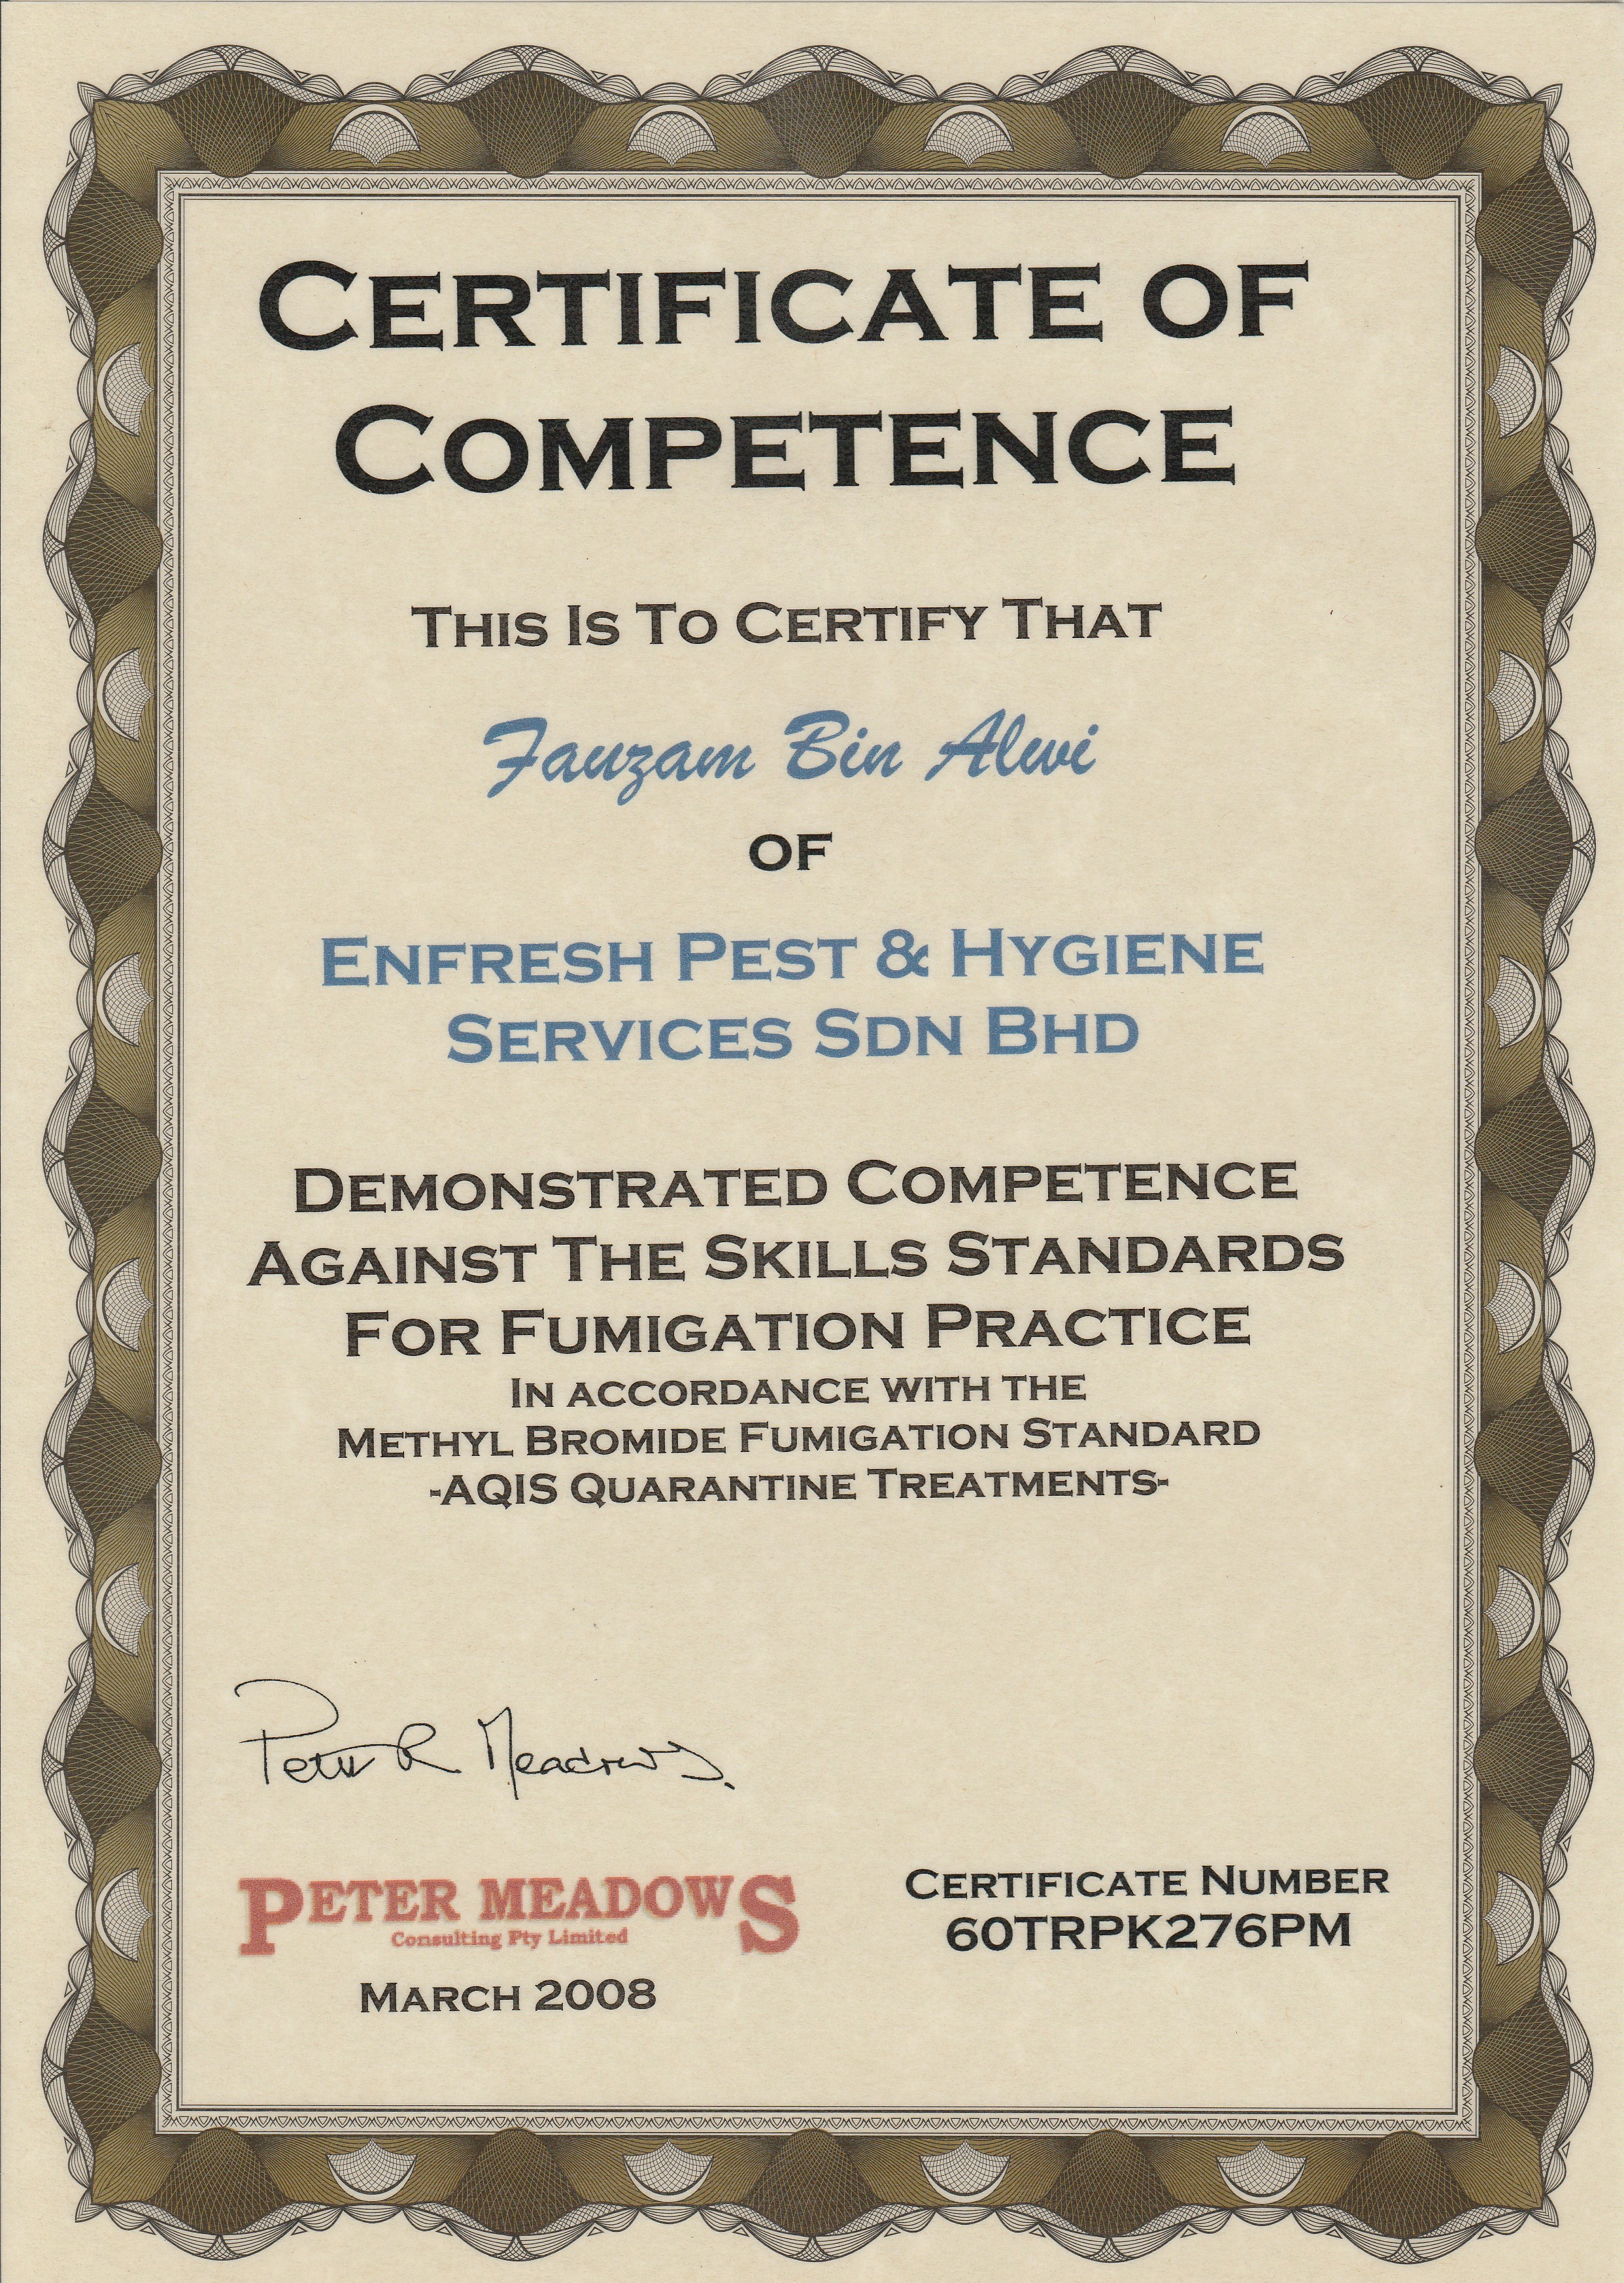 Certificate award enfresh pest hygiene services pest afas certificate of competence fzm 2008 xflitez Gallery